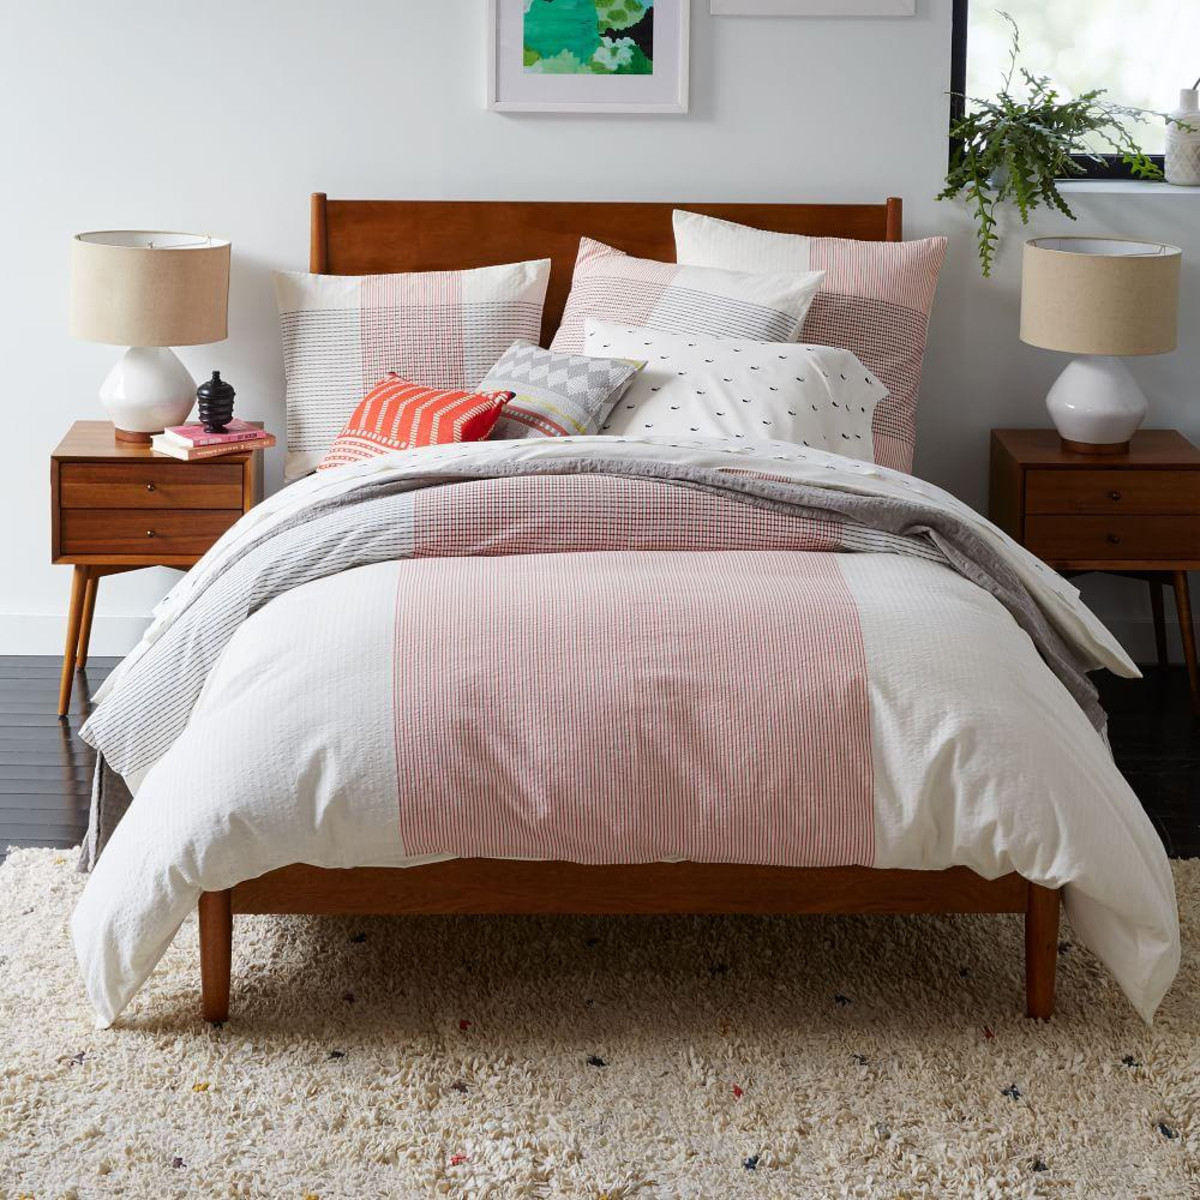 Image of: Mid Century Bed Frame